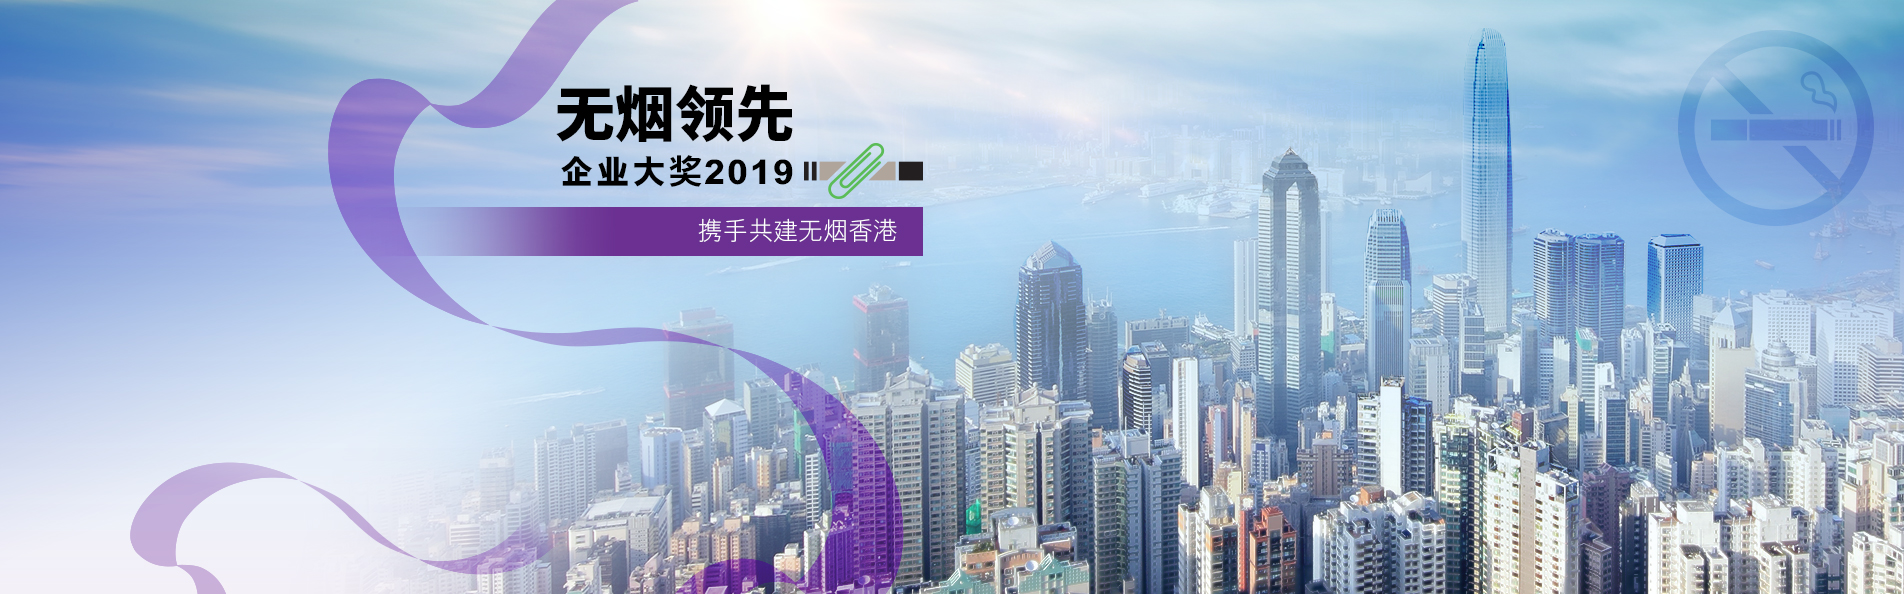 Smoke-free Leading Company Awards 2019. Let's strive for a smoke-free Hong Kong.